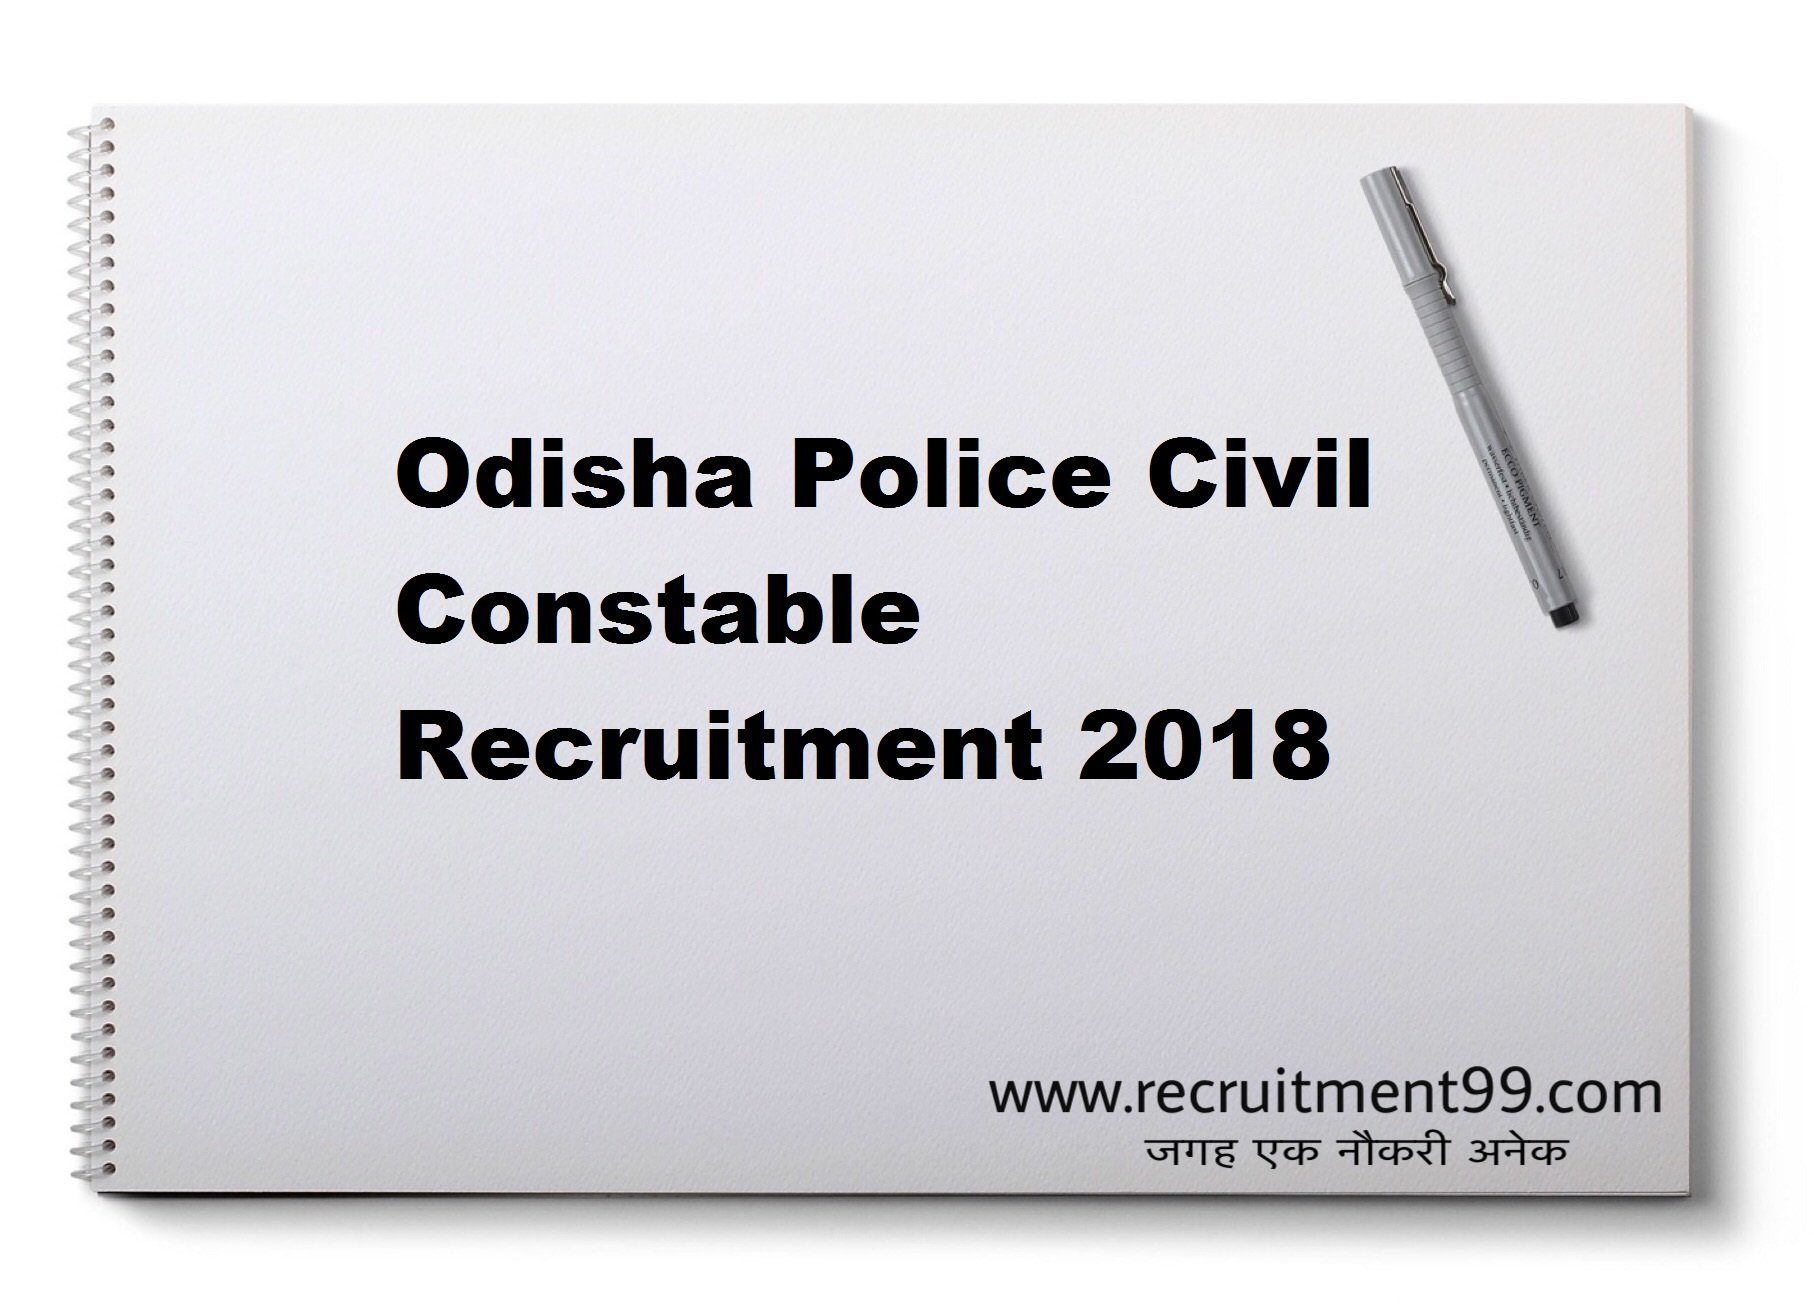 Odisha Police Civil Constable Recruitment Hall Ticket Result 2018